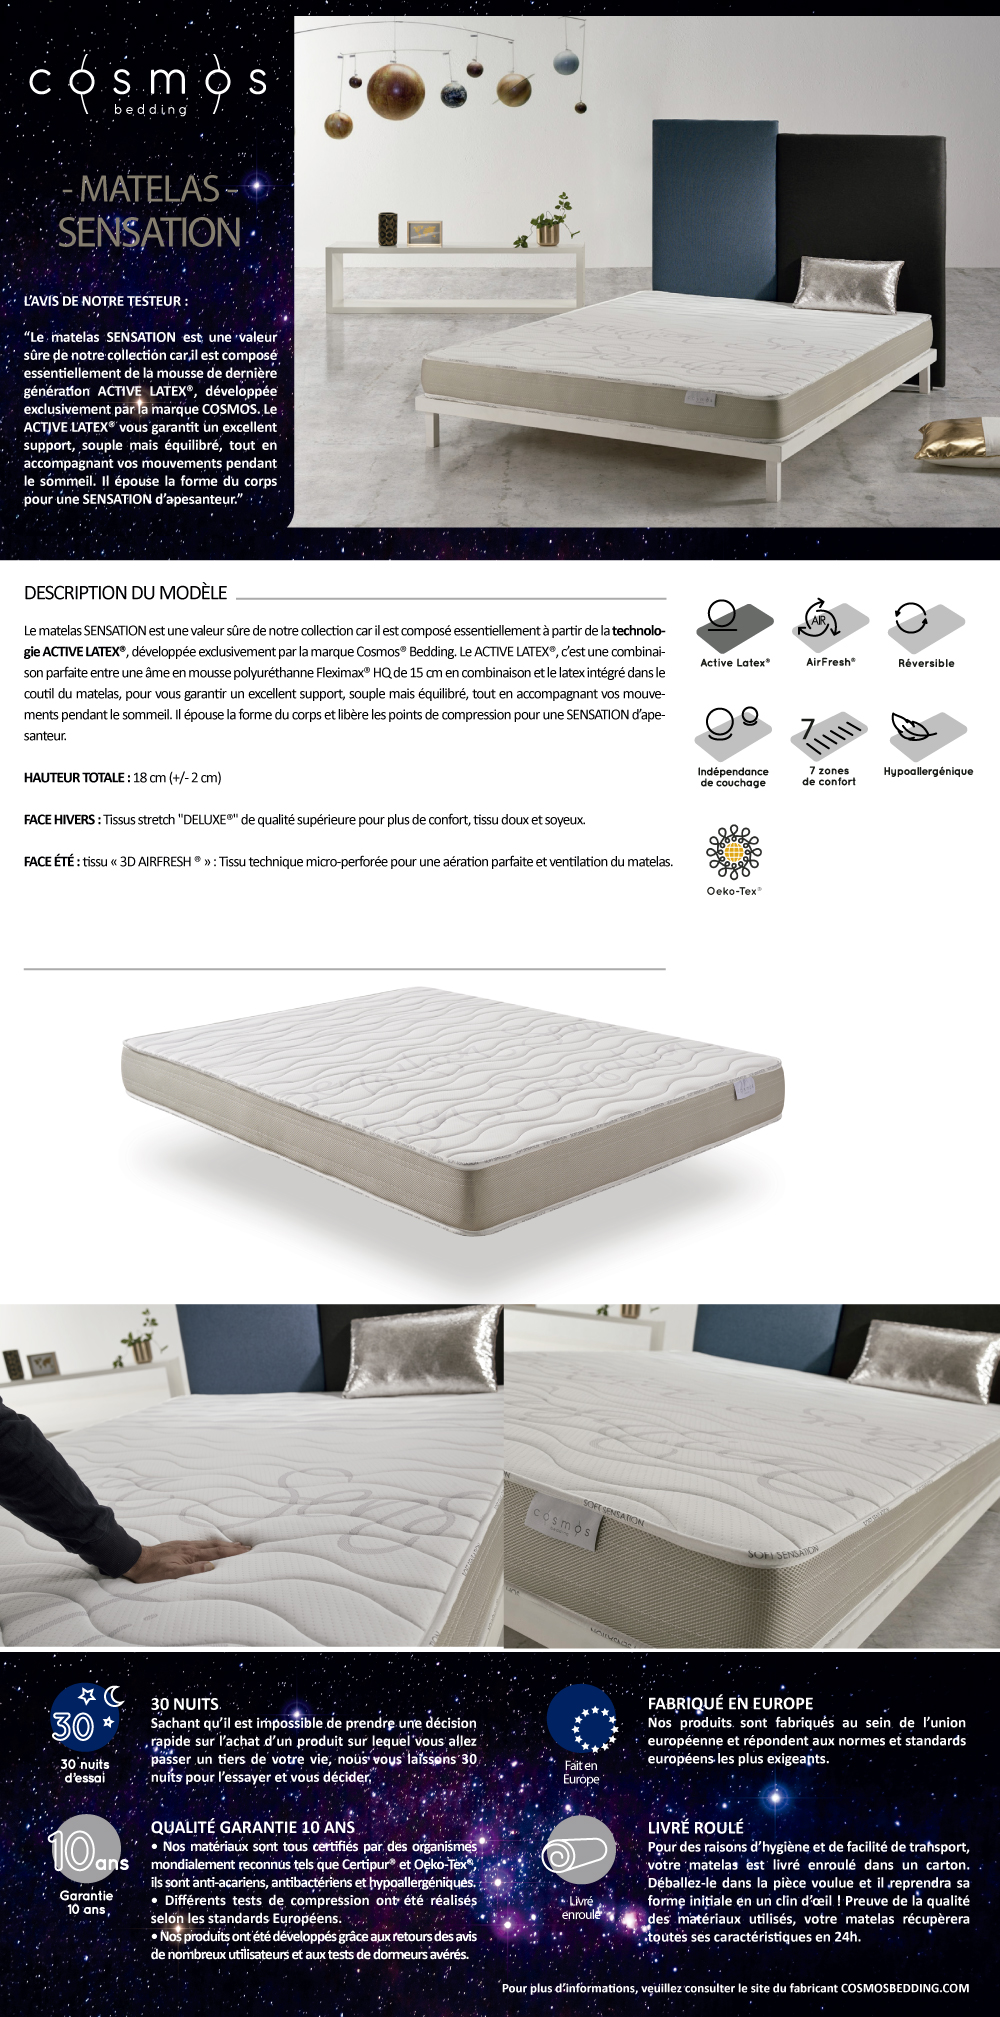 Densité Matelas Latex Matelas Sensation 140x190 Cm En Mousse Hr Active Latex Triple Densité Reversible à 7 Zones